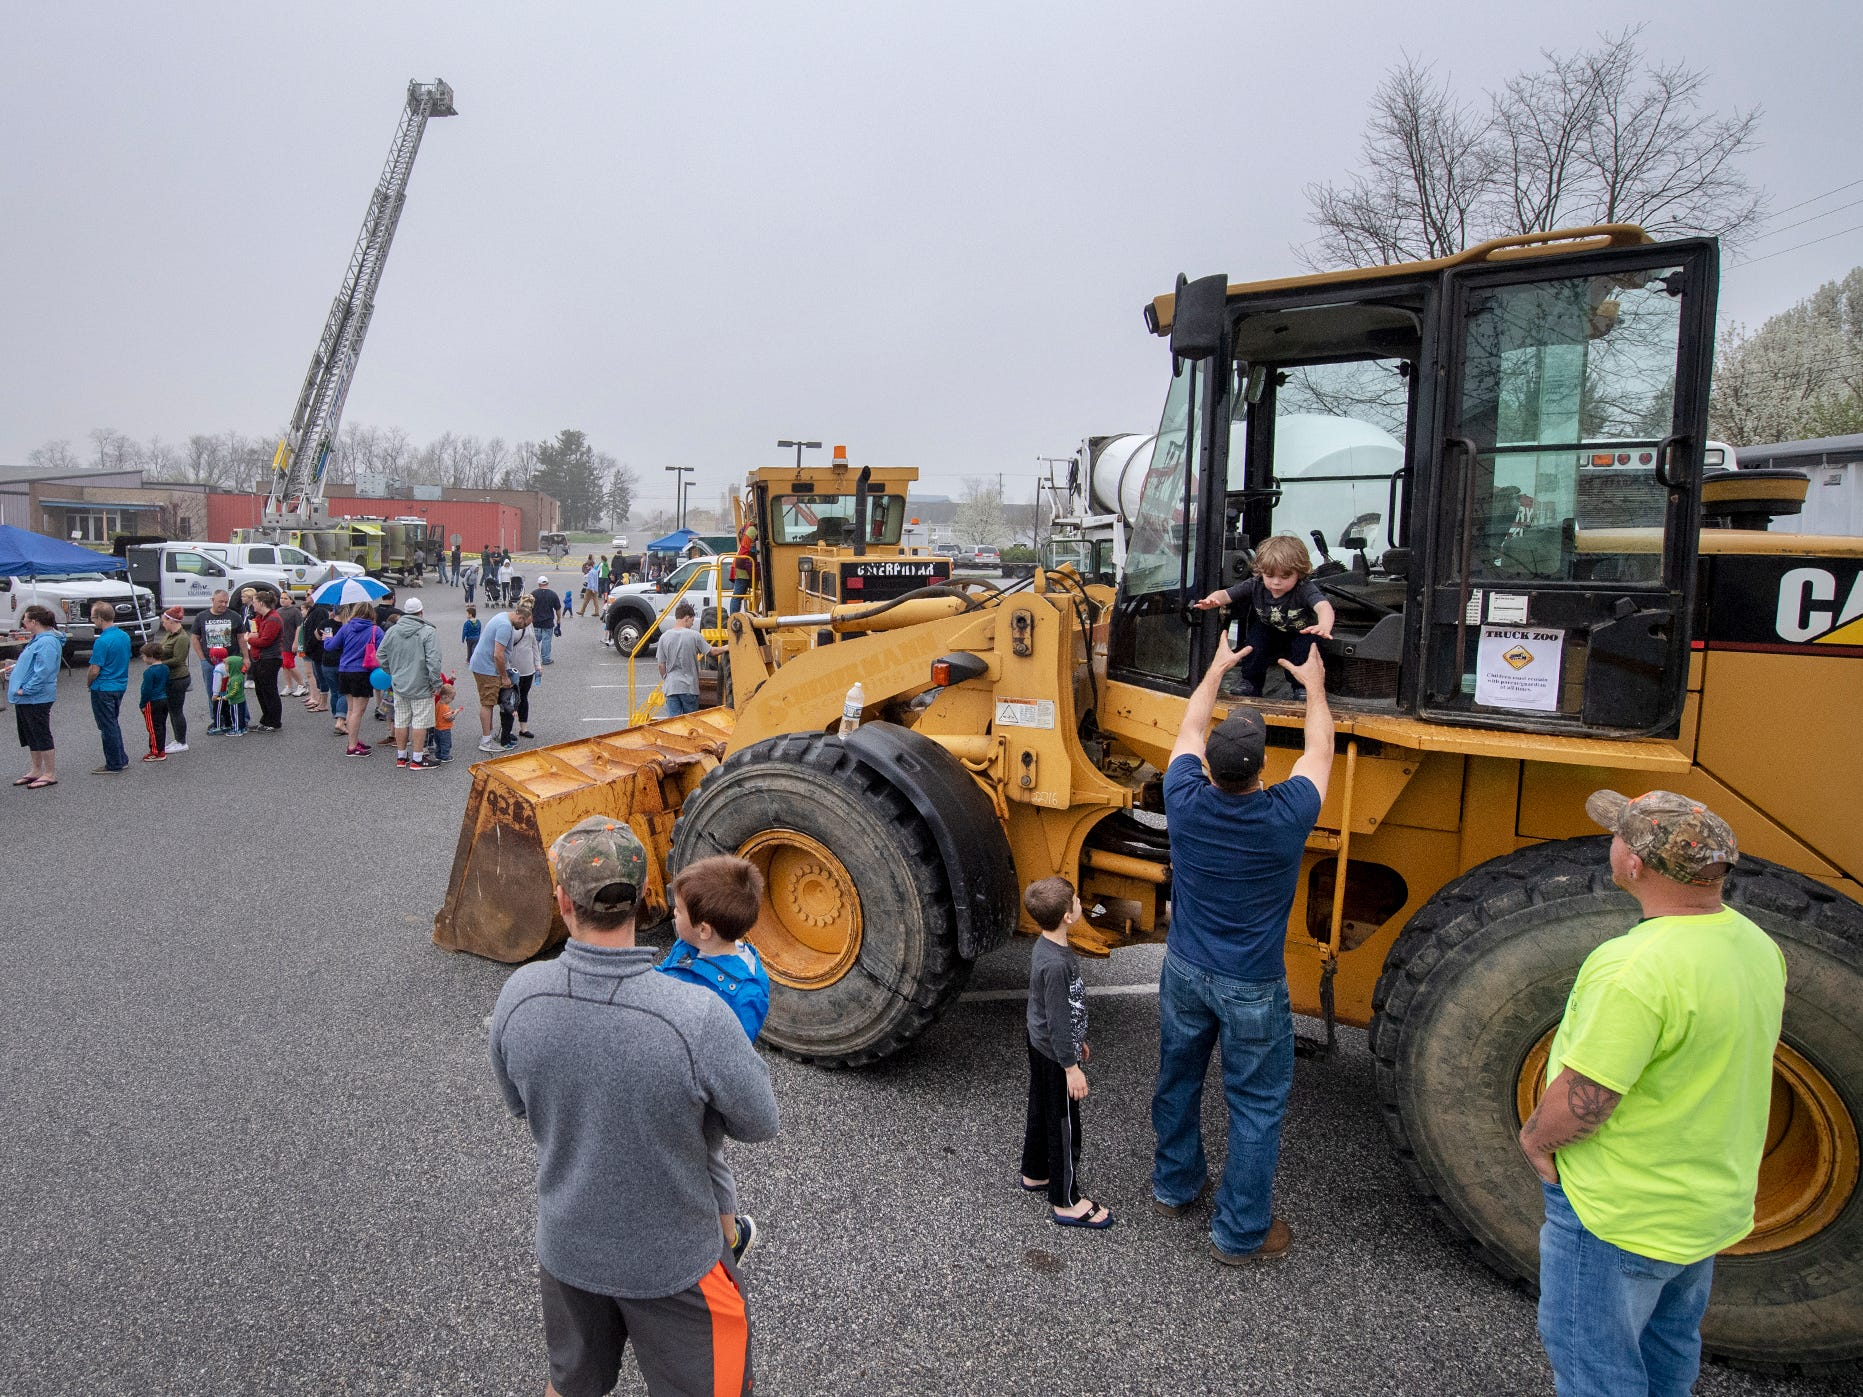 Children wait in lines for a chance to see a backhoe in action from the cab and get boosted into tall trucks during the Truck Zoo at Paul Smith Library of Southern York County.